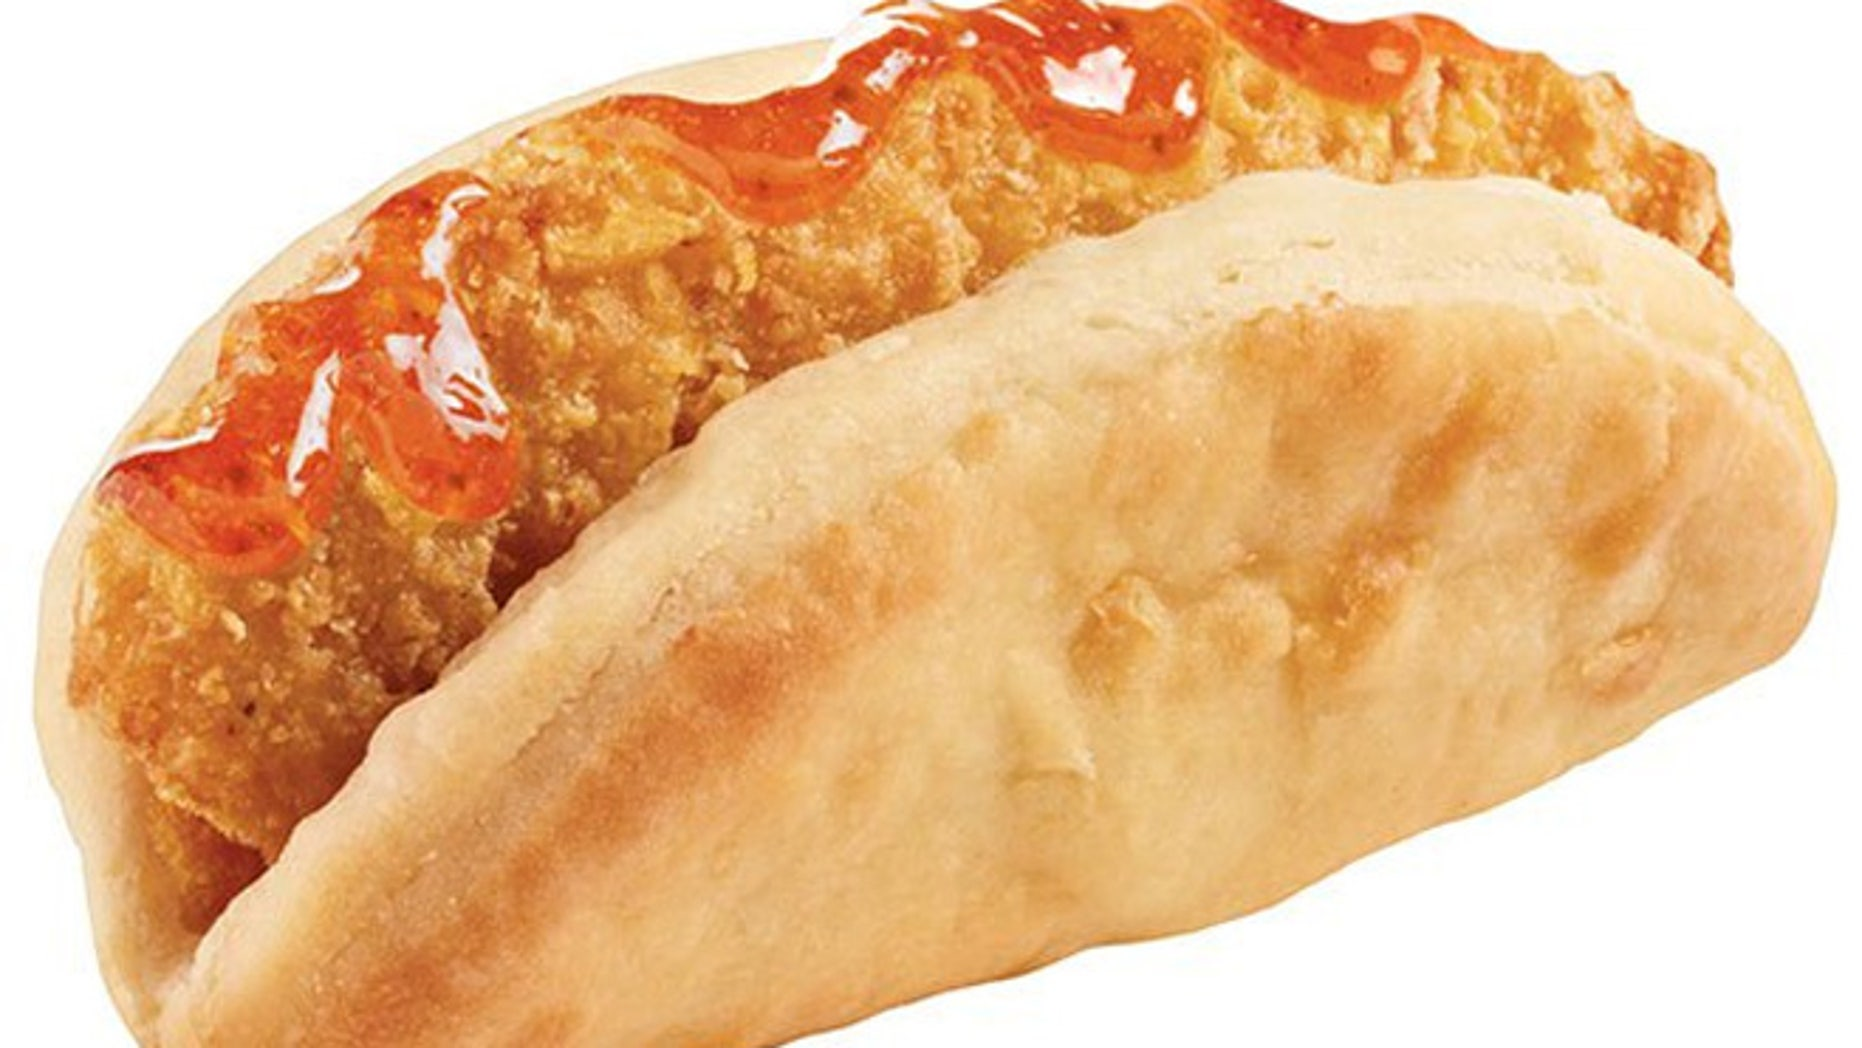 Taco Bell is testing the Biscuit Taco in select markets.